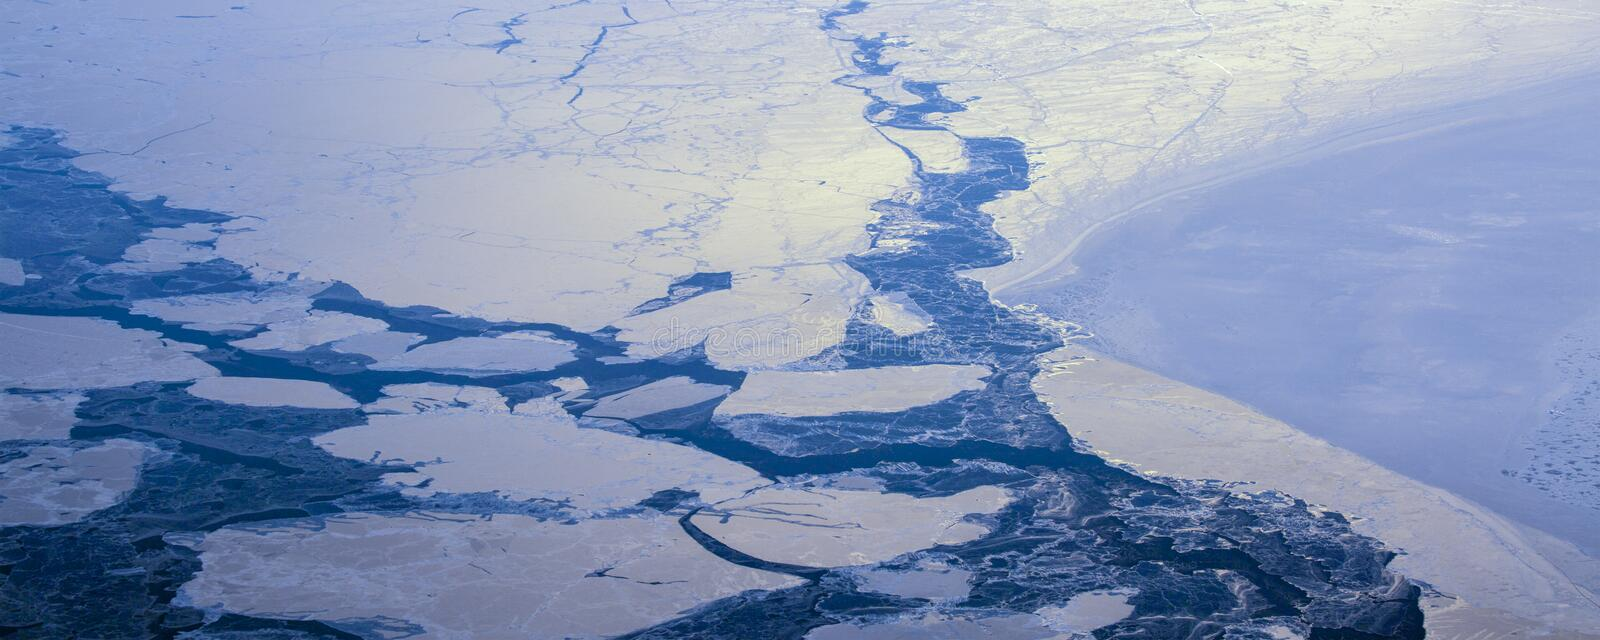 22Take an aerial view of the ice and sunrise over the bering strait.(1). The bering strait is located in the high latitudes, cold weather, many storms royalty free stock image